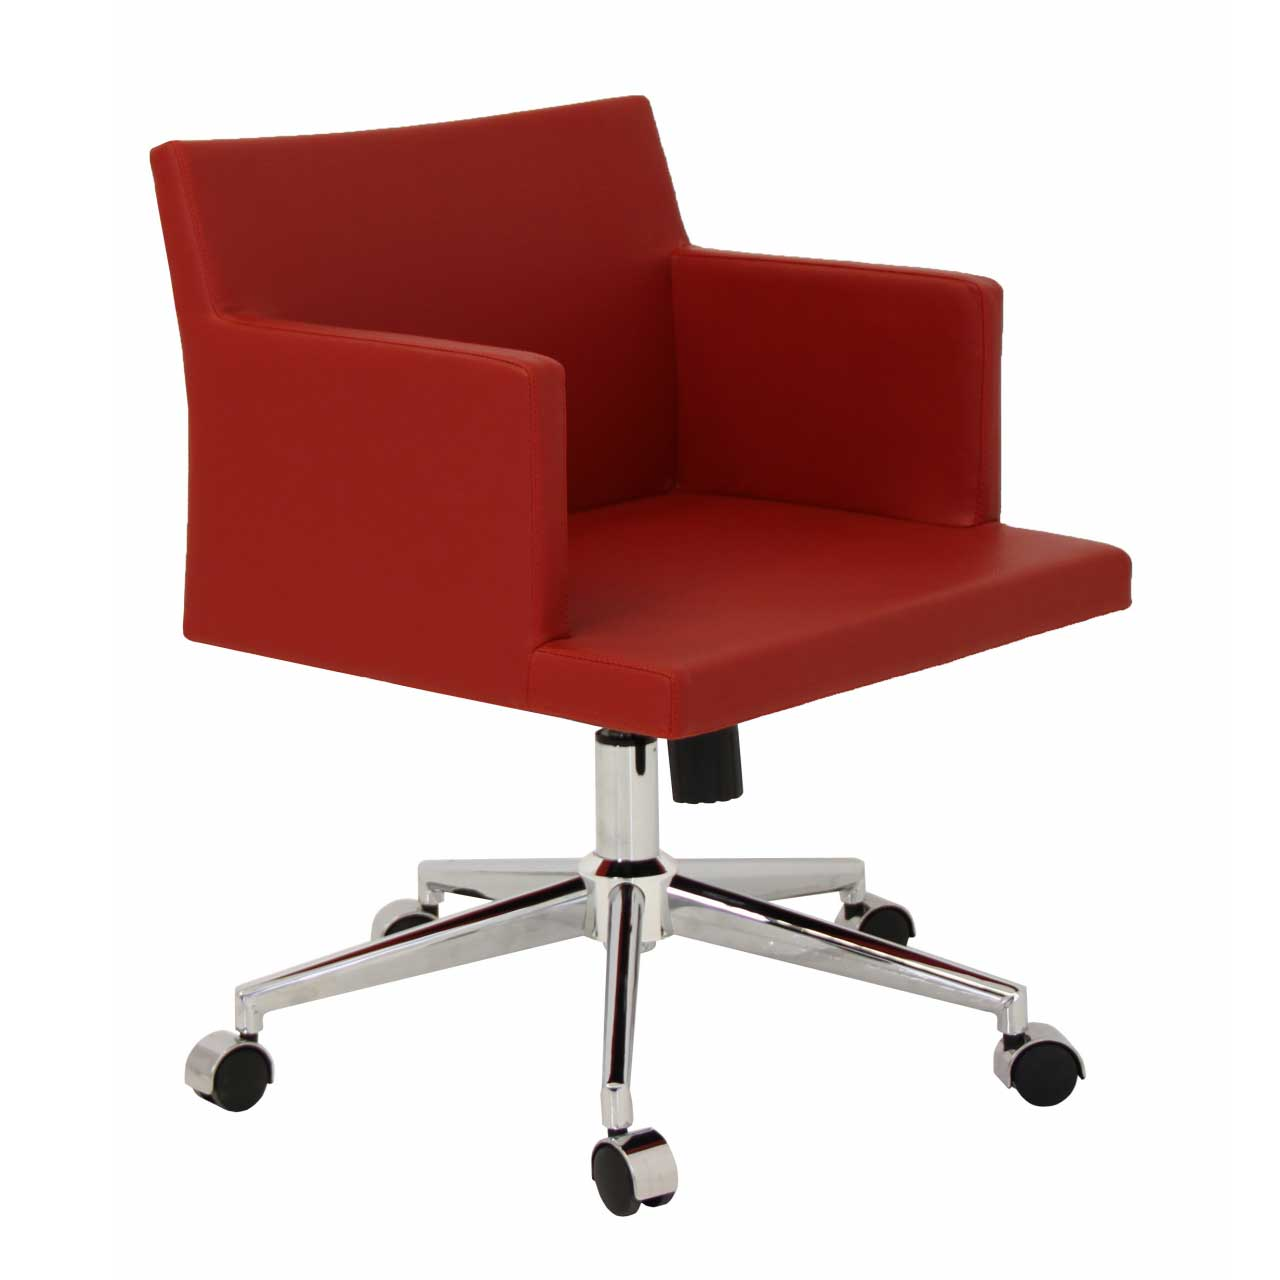 Soho stylish red wide office guest chair